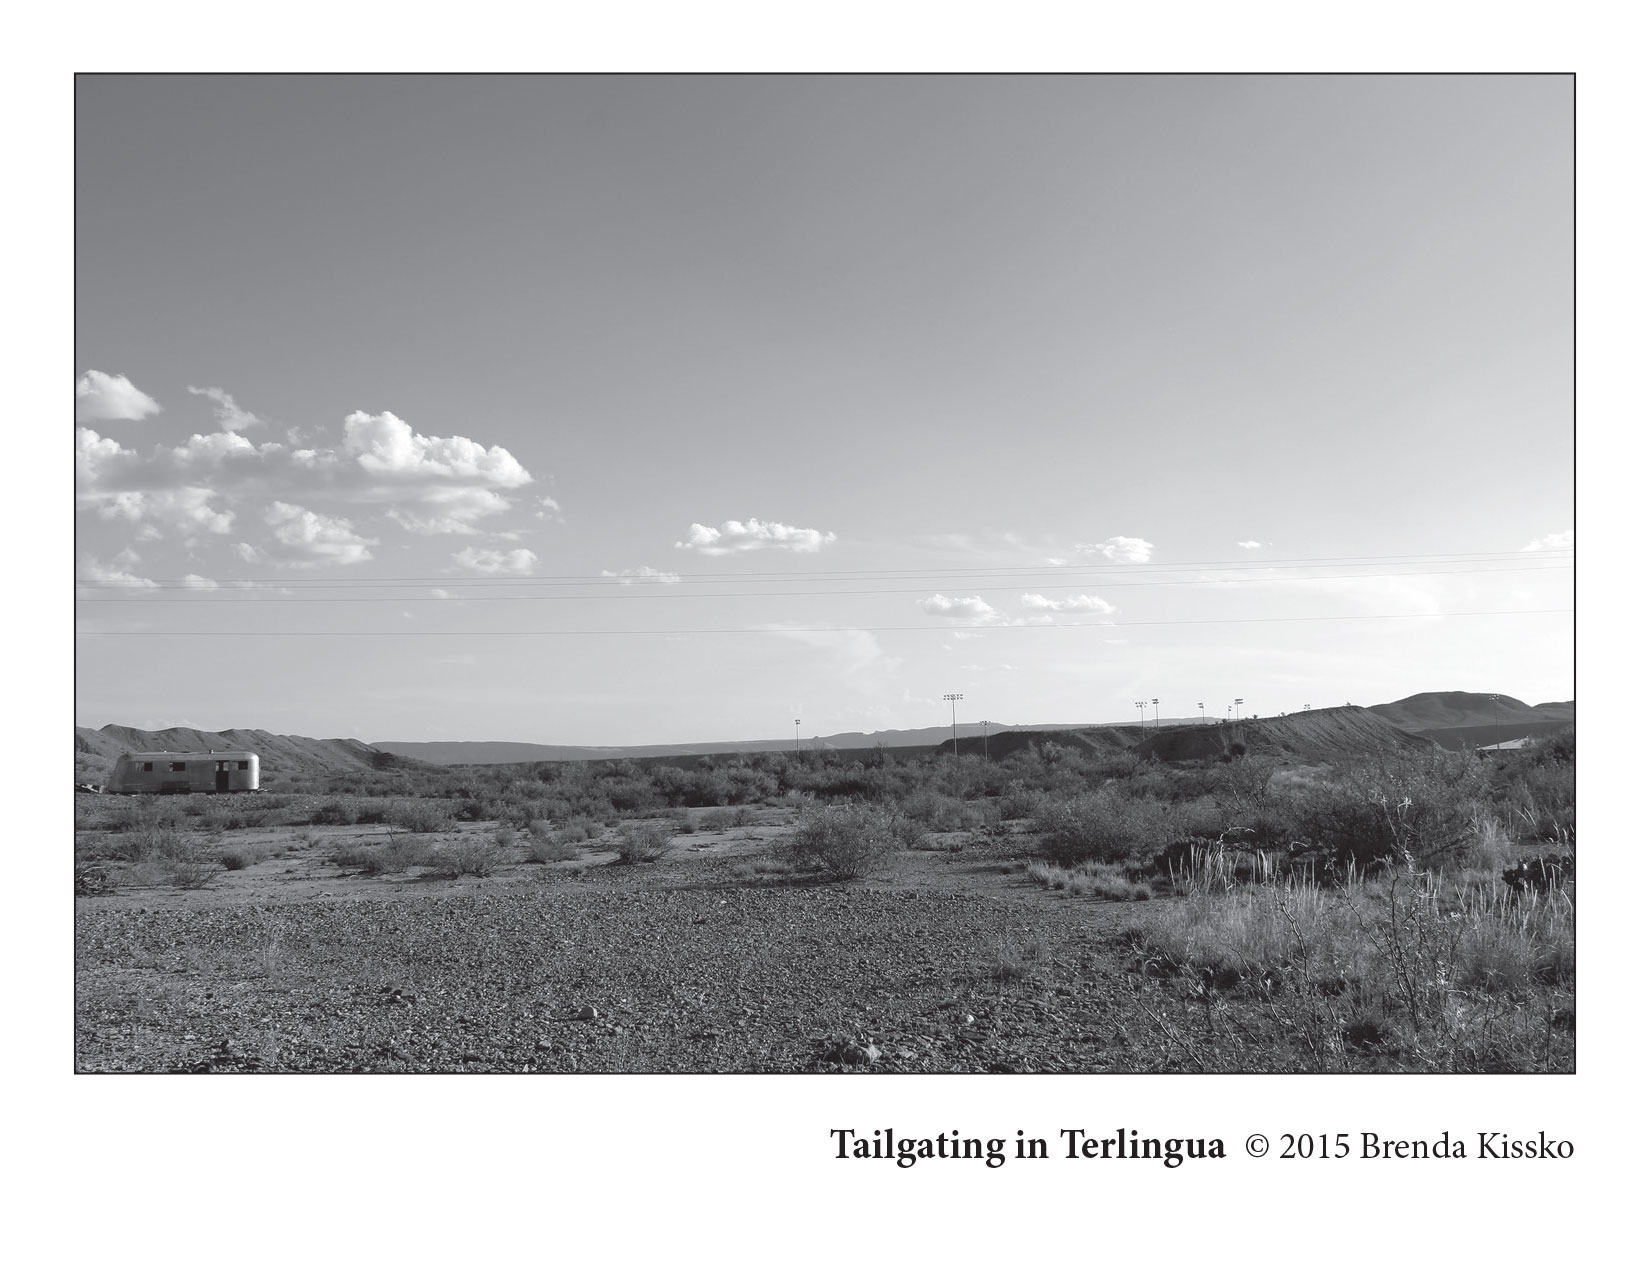 Tailgating in Terlingua